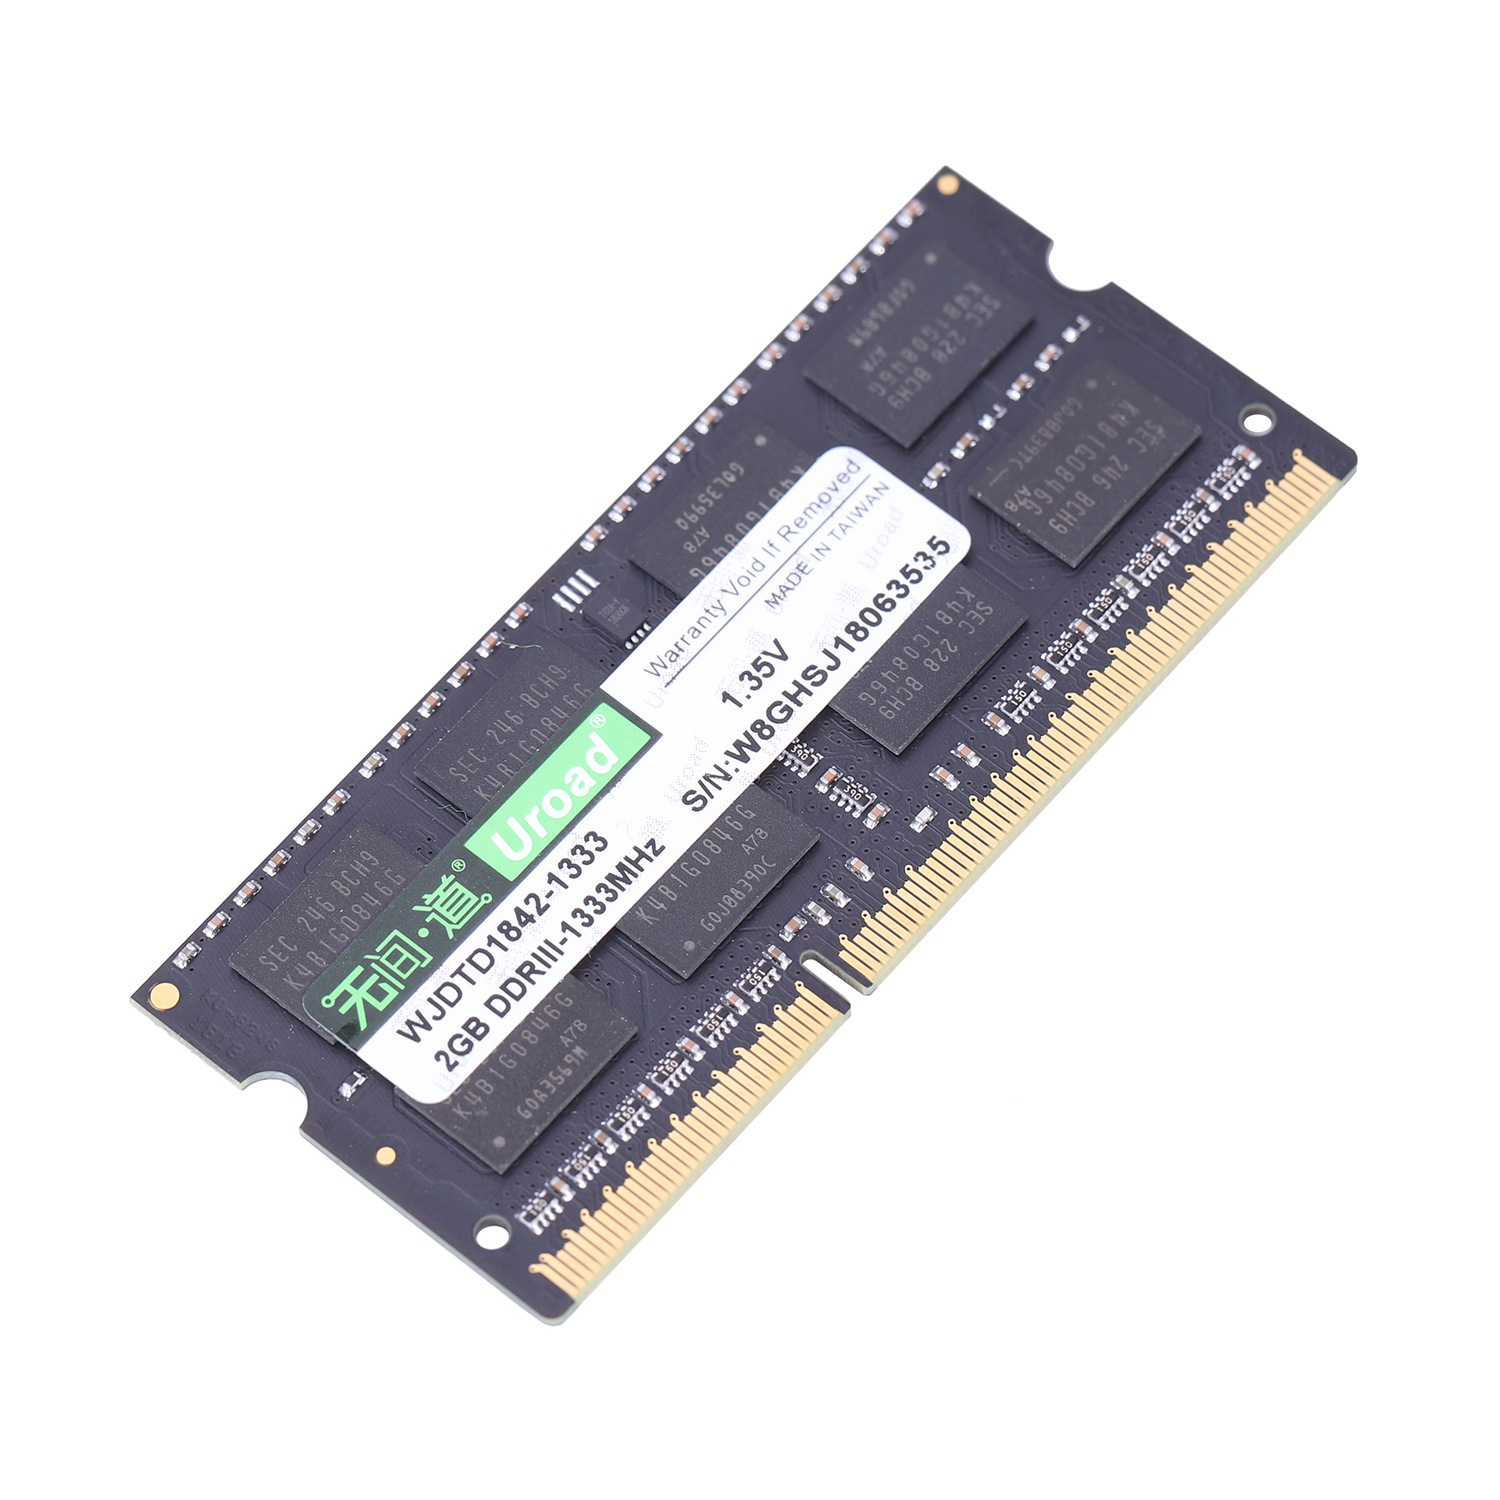 Uroad <font><b>DDR3</b></font> Laptop PC 1,2 V <font><b>Sodimm</b></font> <font><b>Ram</b></font> Notebook Speicher image